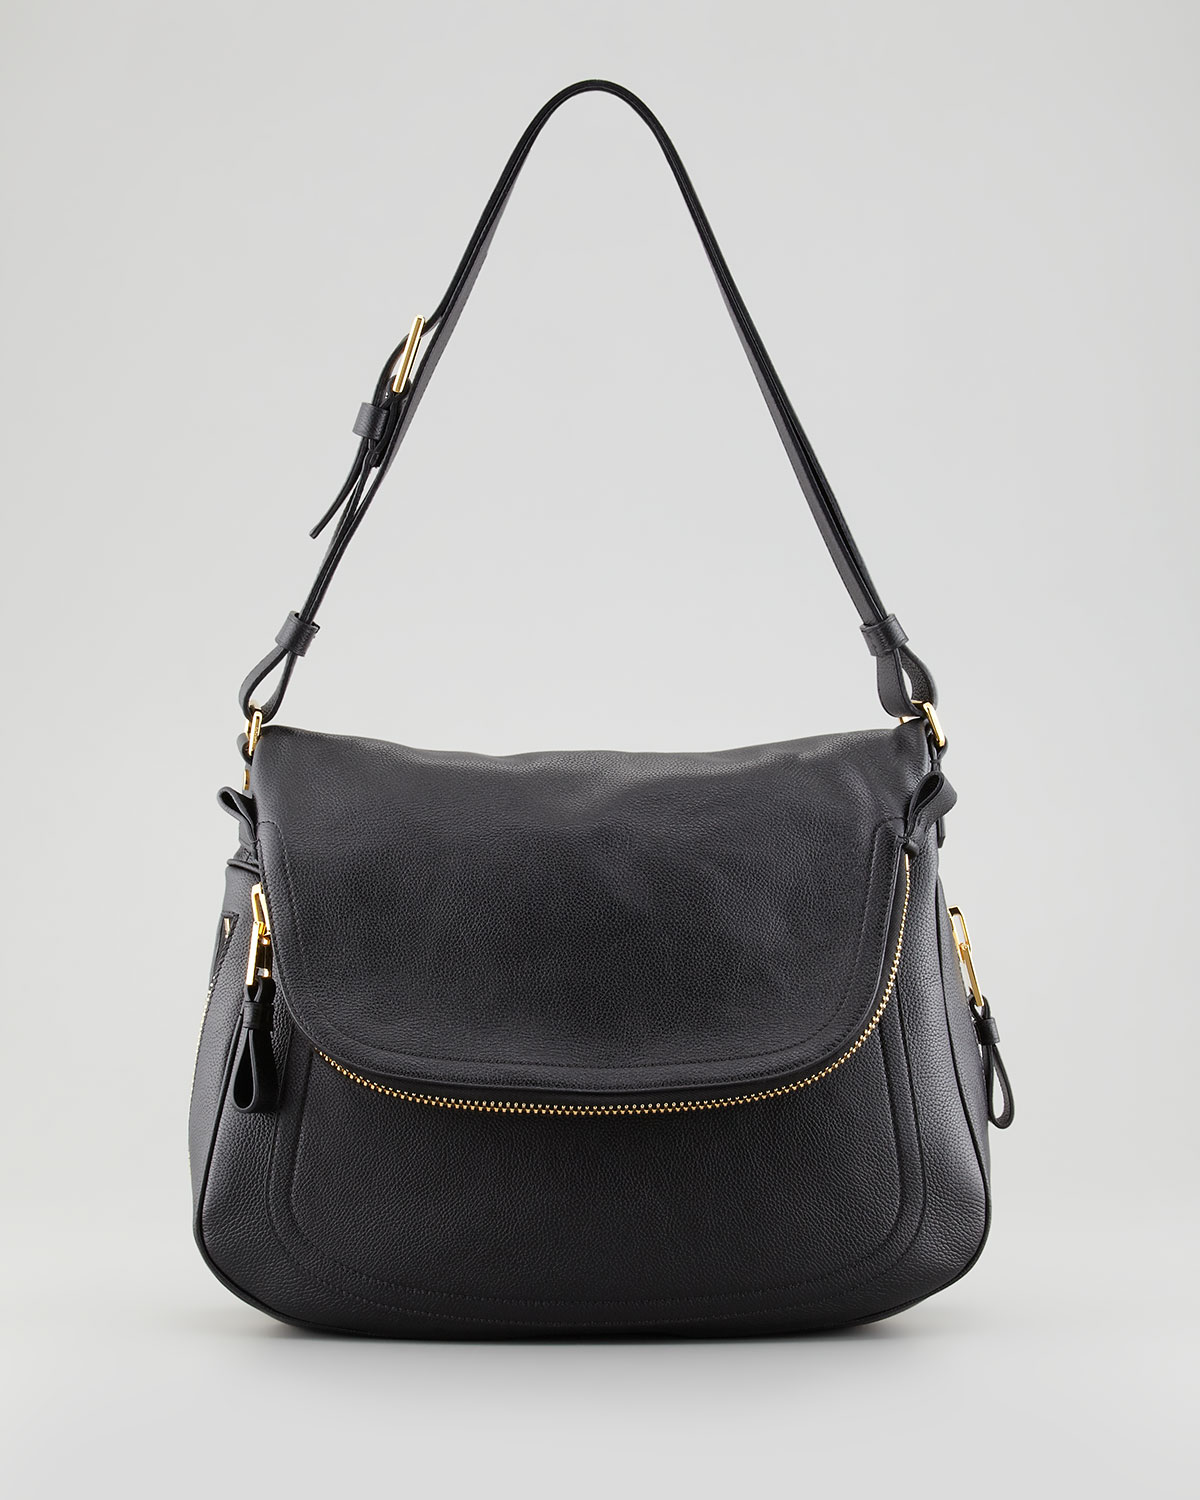 Perfect Black Leather TOM FORD Handbag  Vestiaire Collective